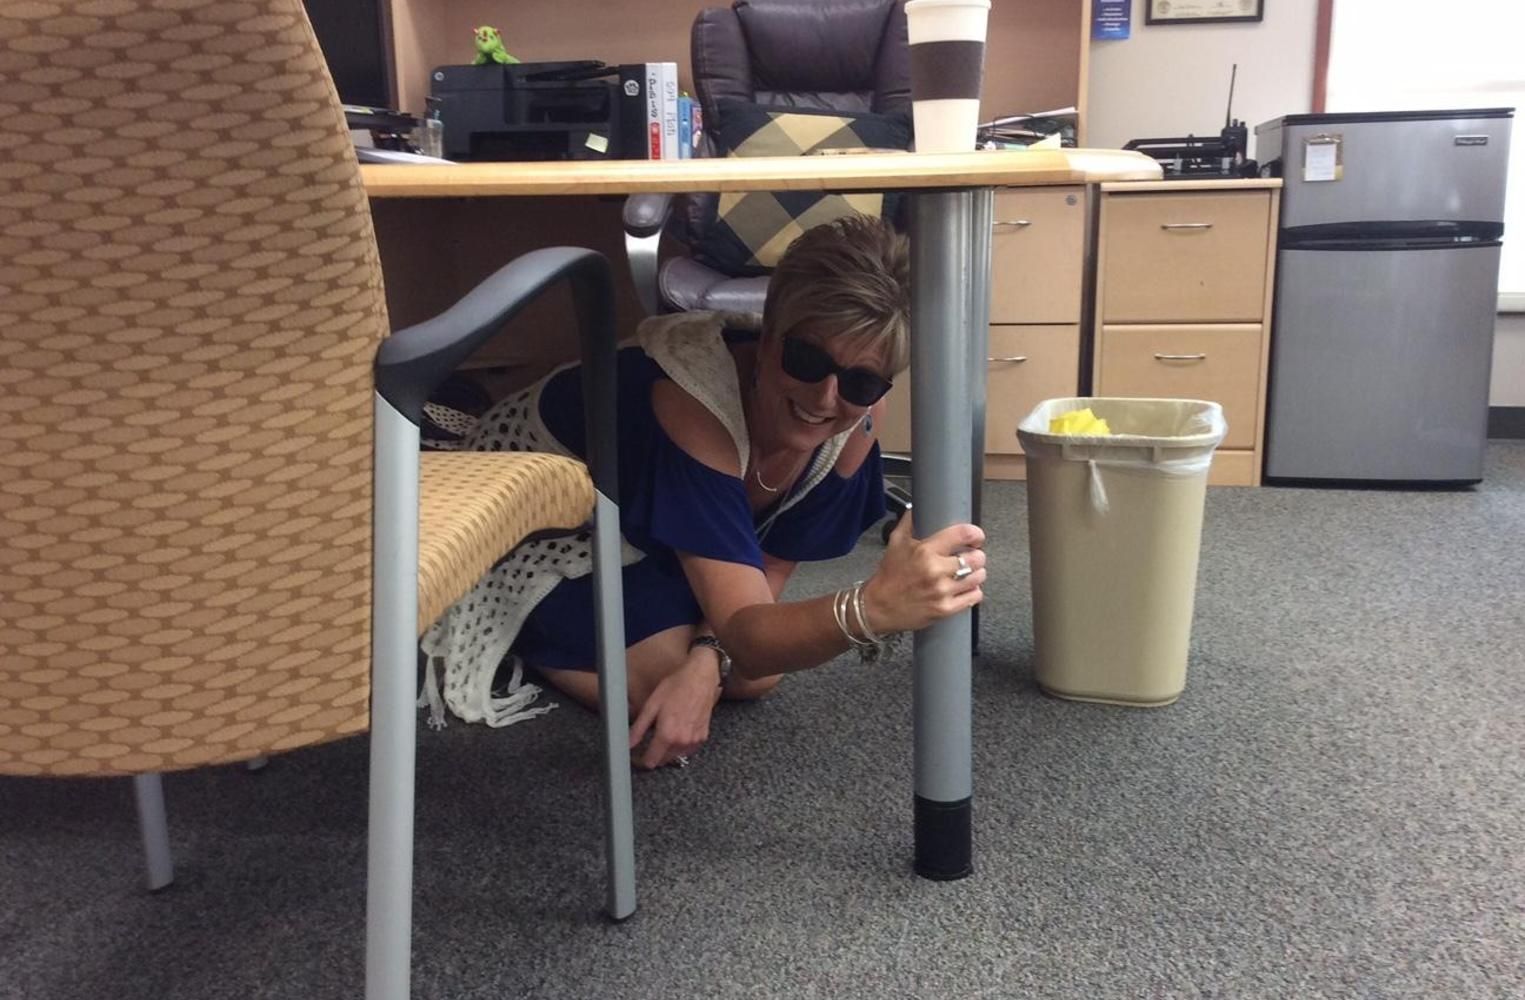 Mrs. B is a great example during the Great Shakeout